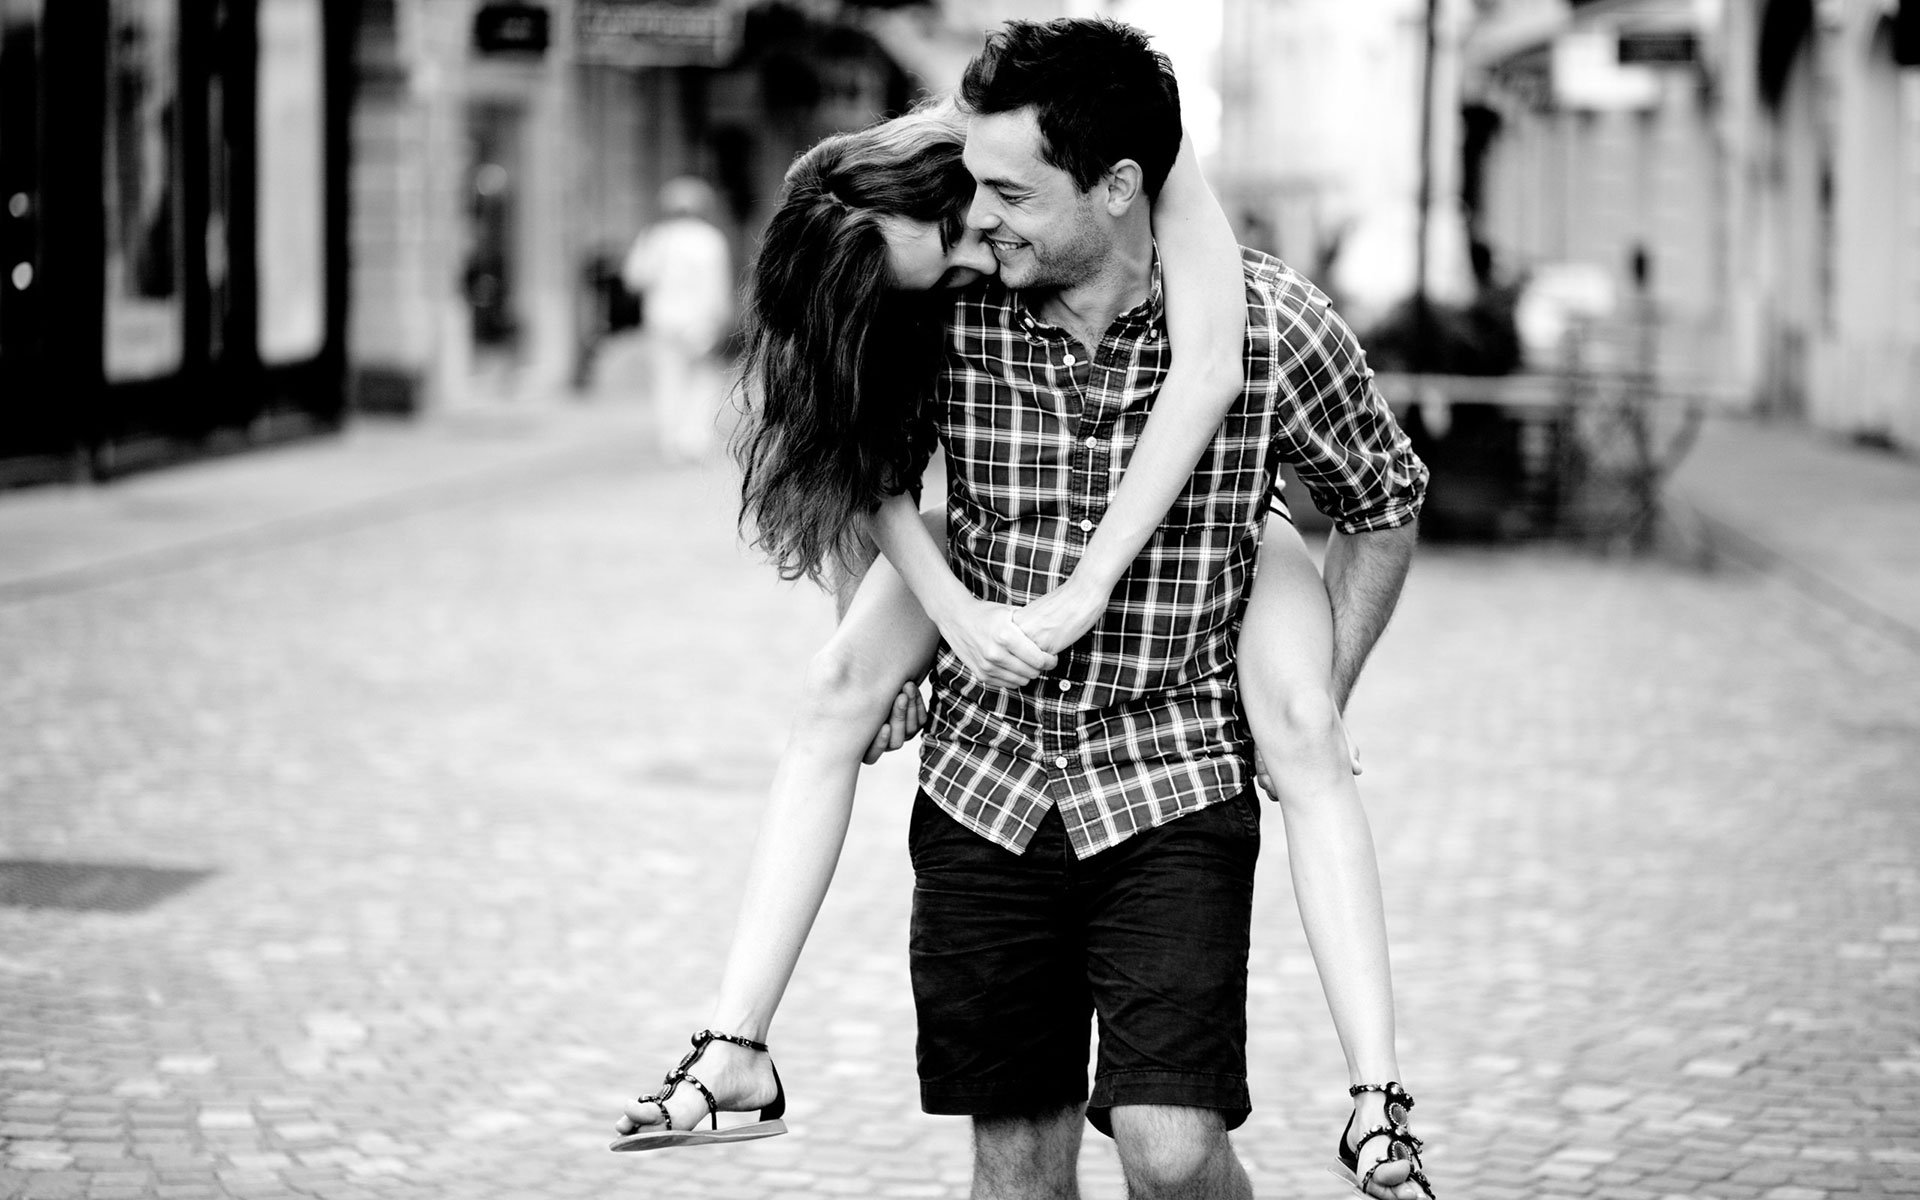 Romantic Love Girl Wallpaper : Sweet Black and White Romance Wallpaper of Love couples